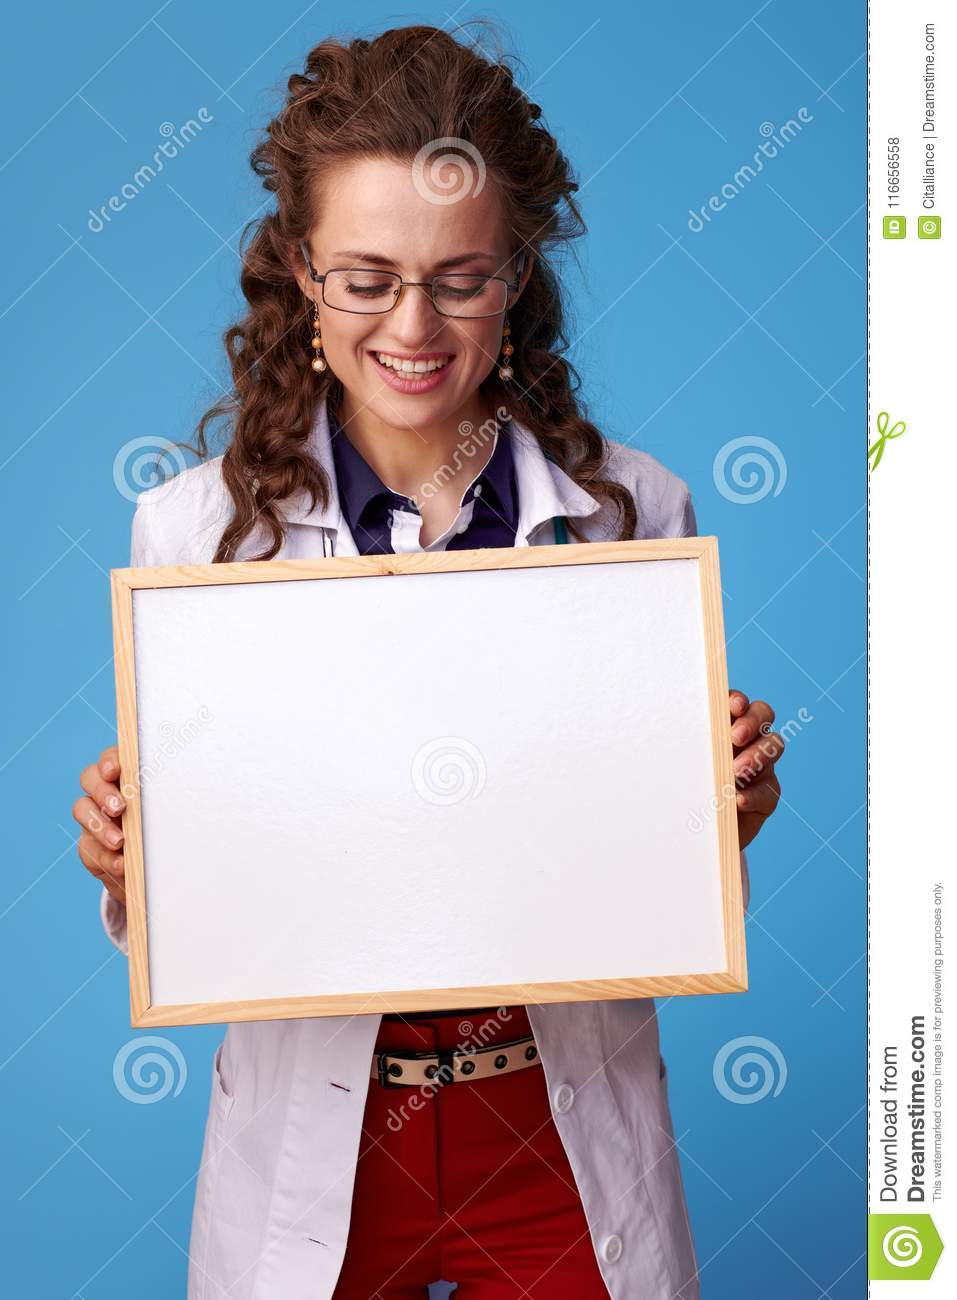 Happy doctor woman looking at blank board on blue